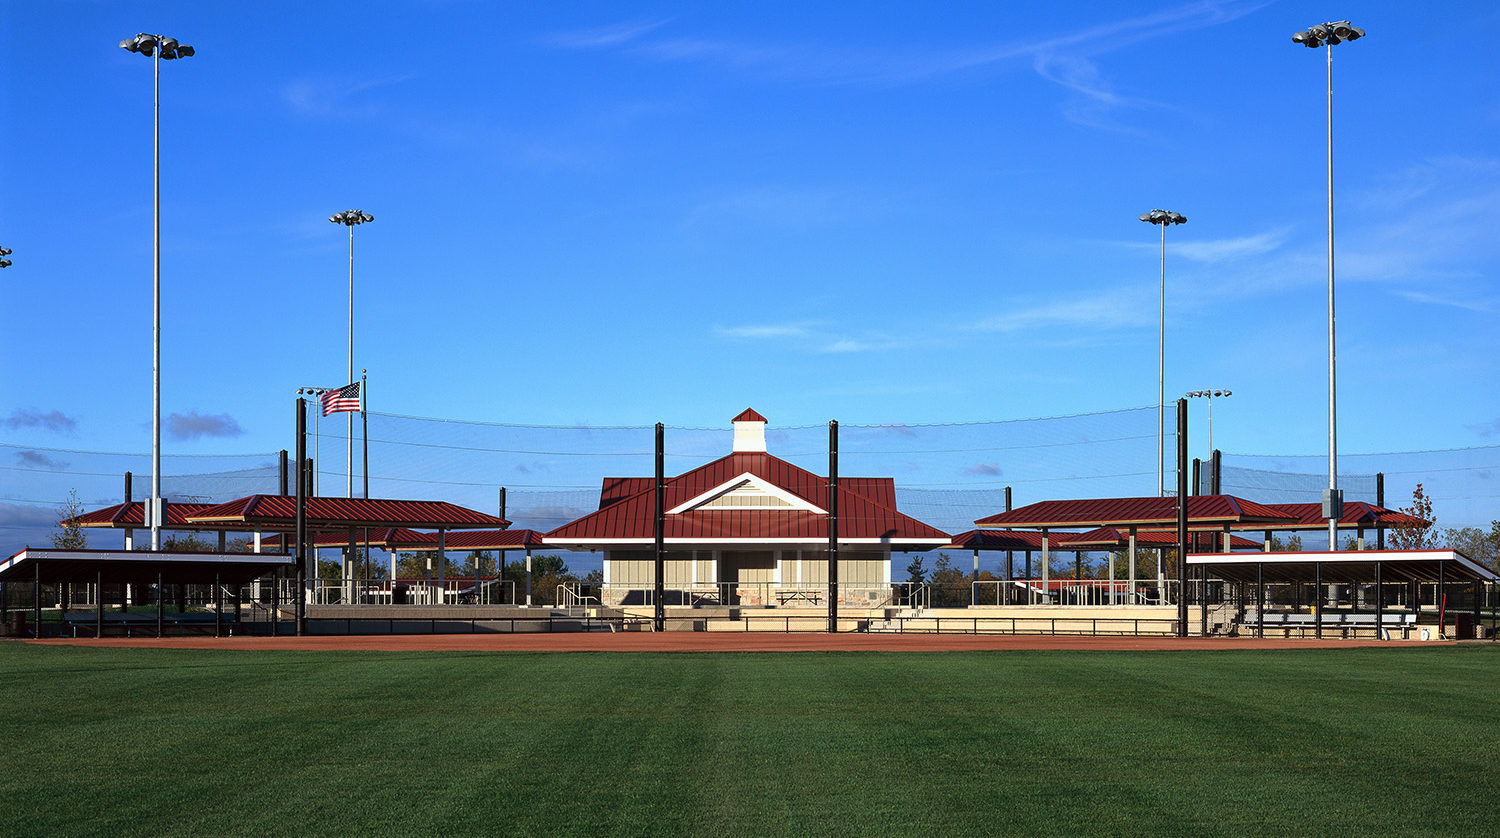 Waukegan Park District Outdoor Sports Complex exterior